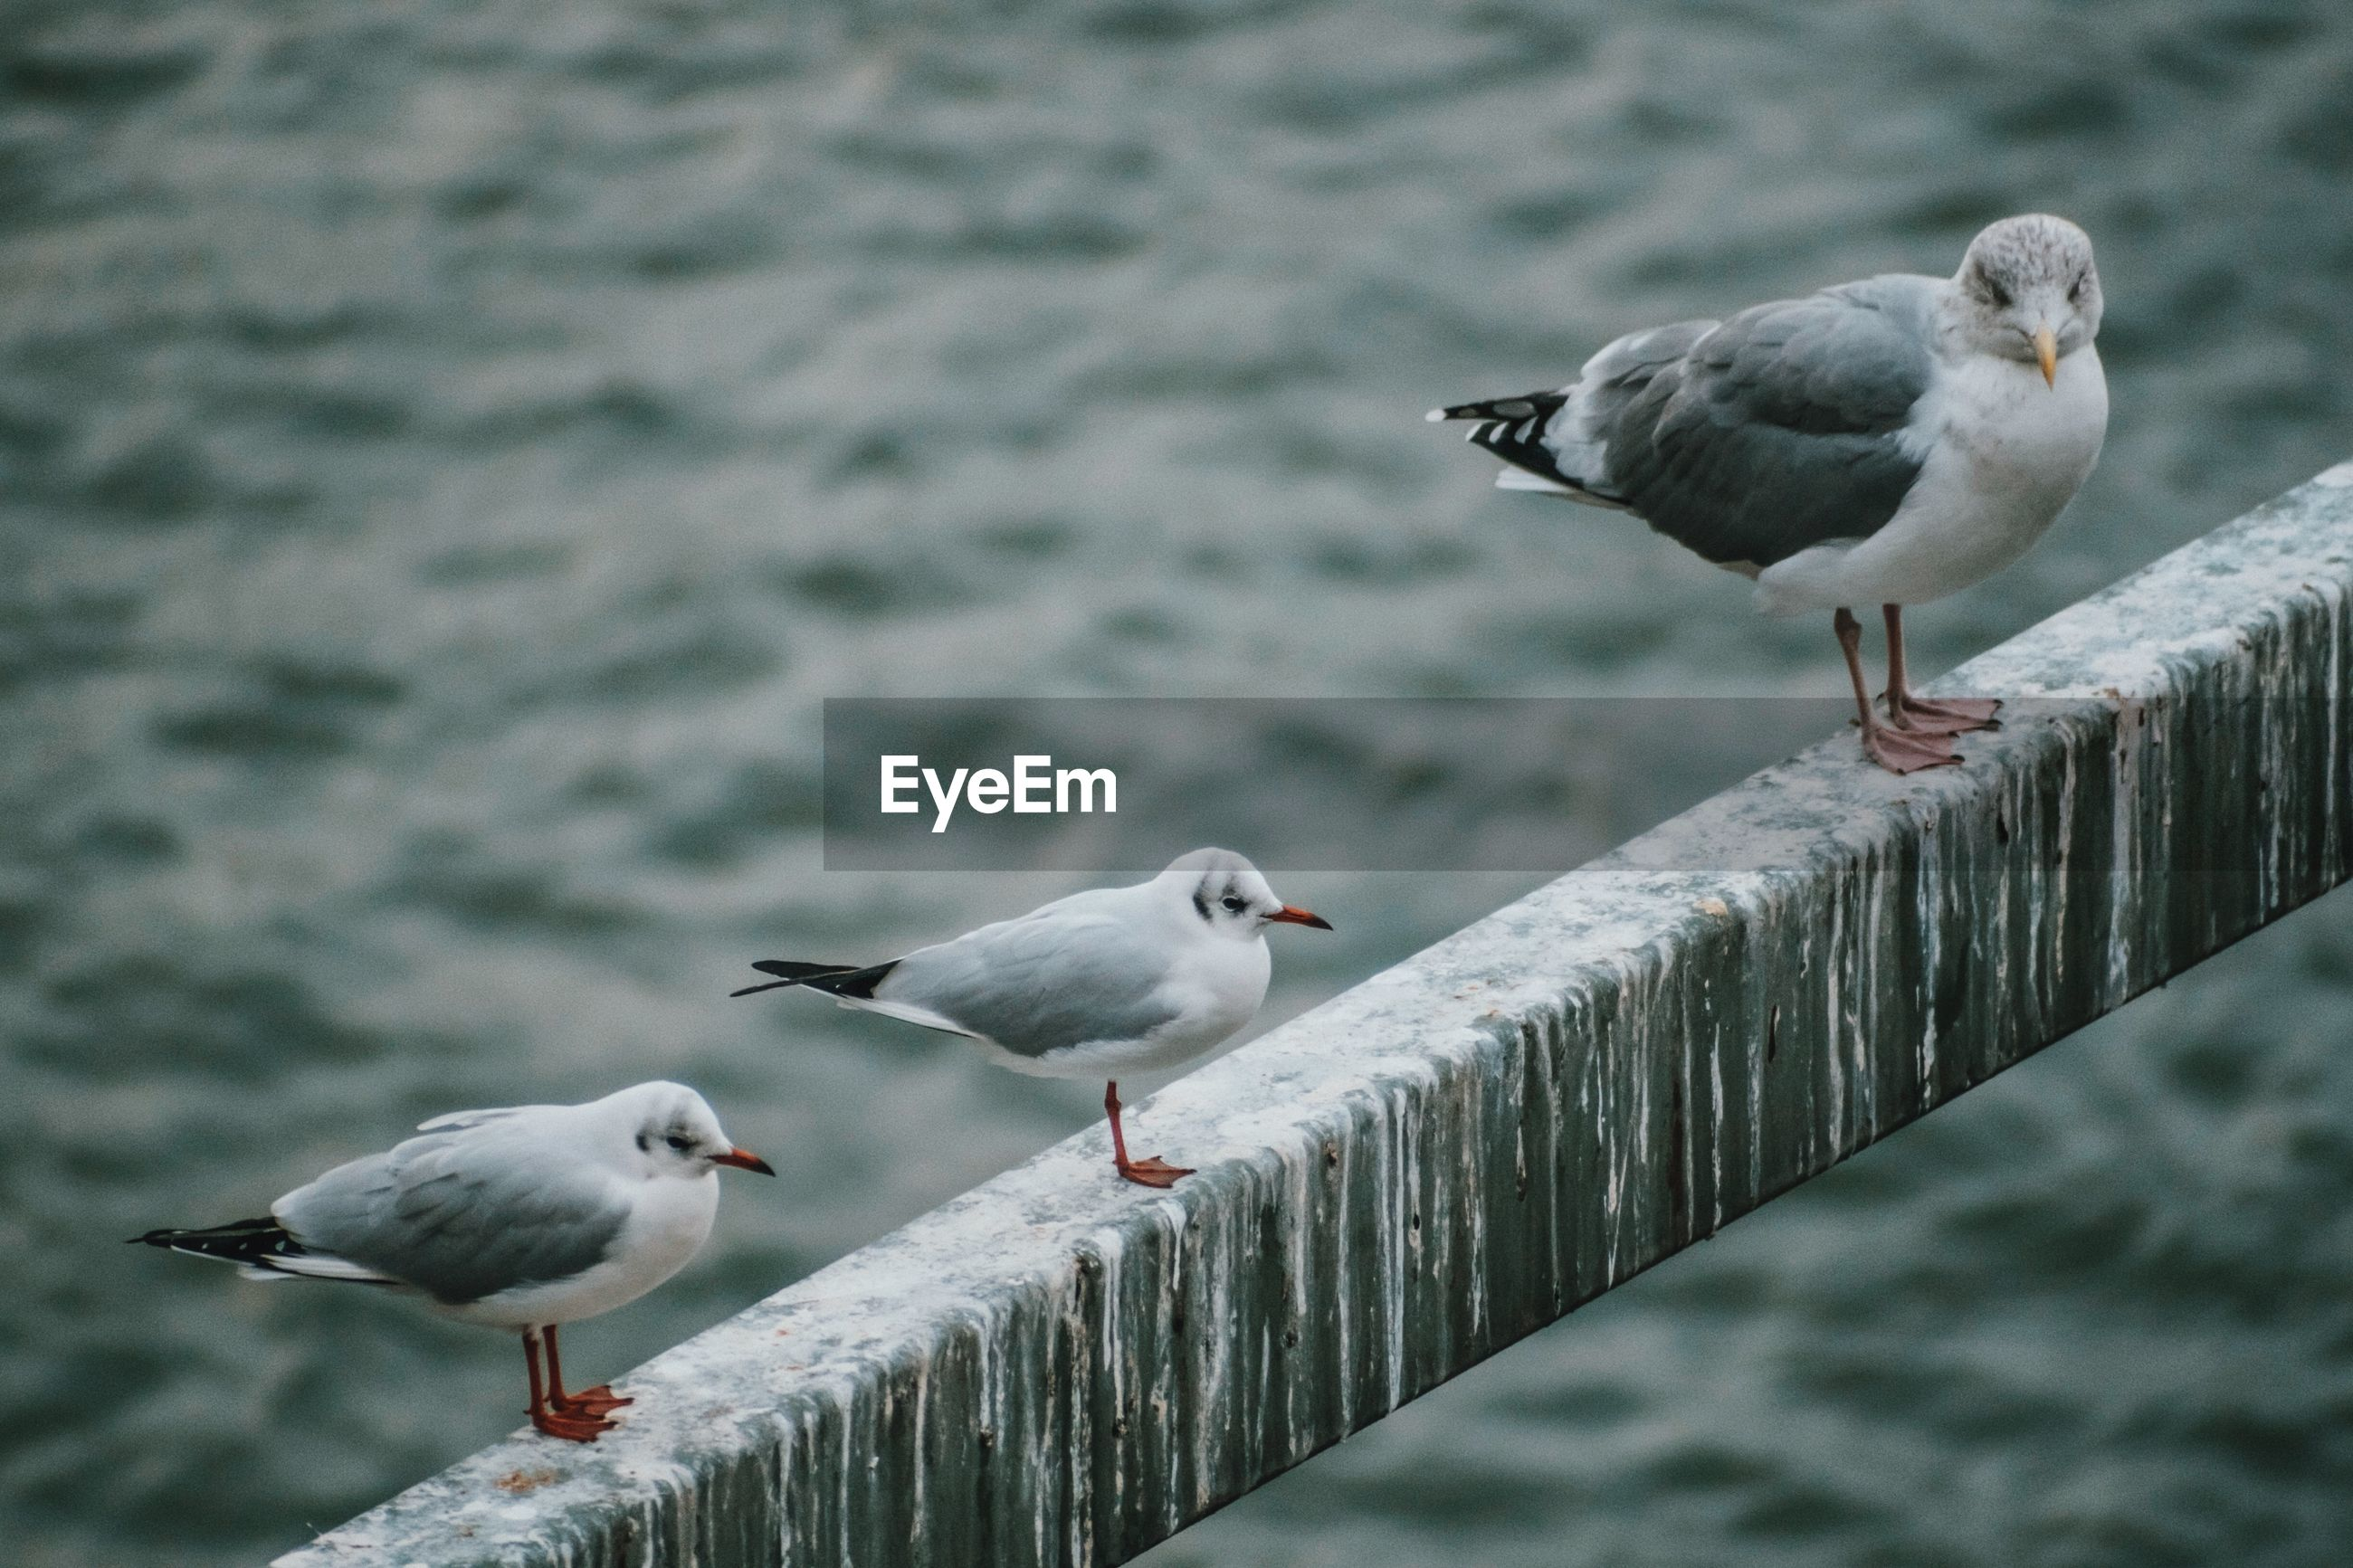 Seagulls perching on railing against water